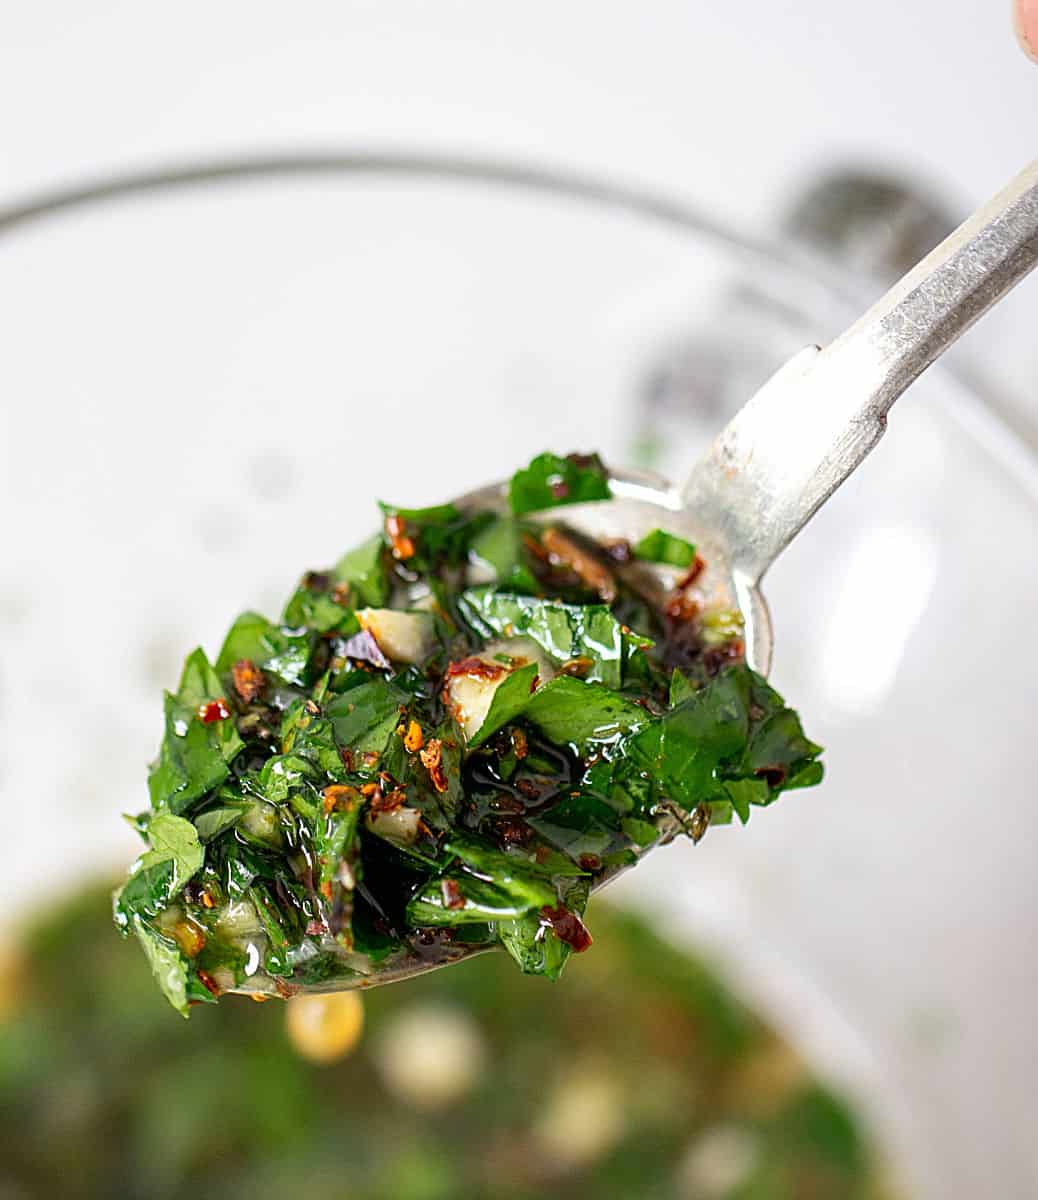 Spoon with chimichurri sauce over glass jar